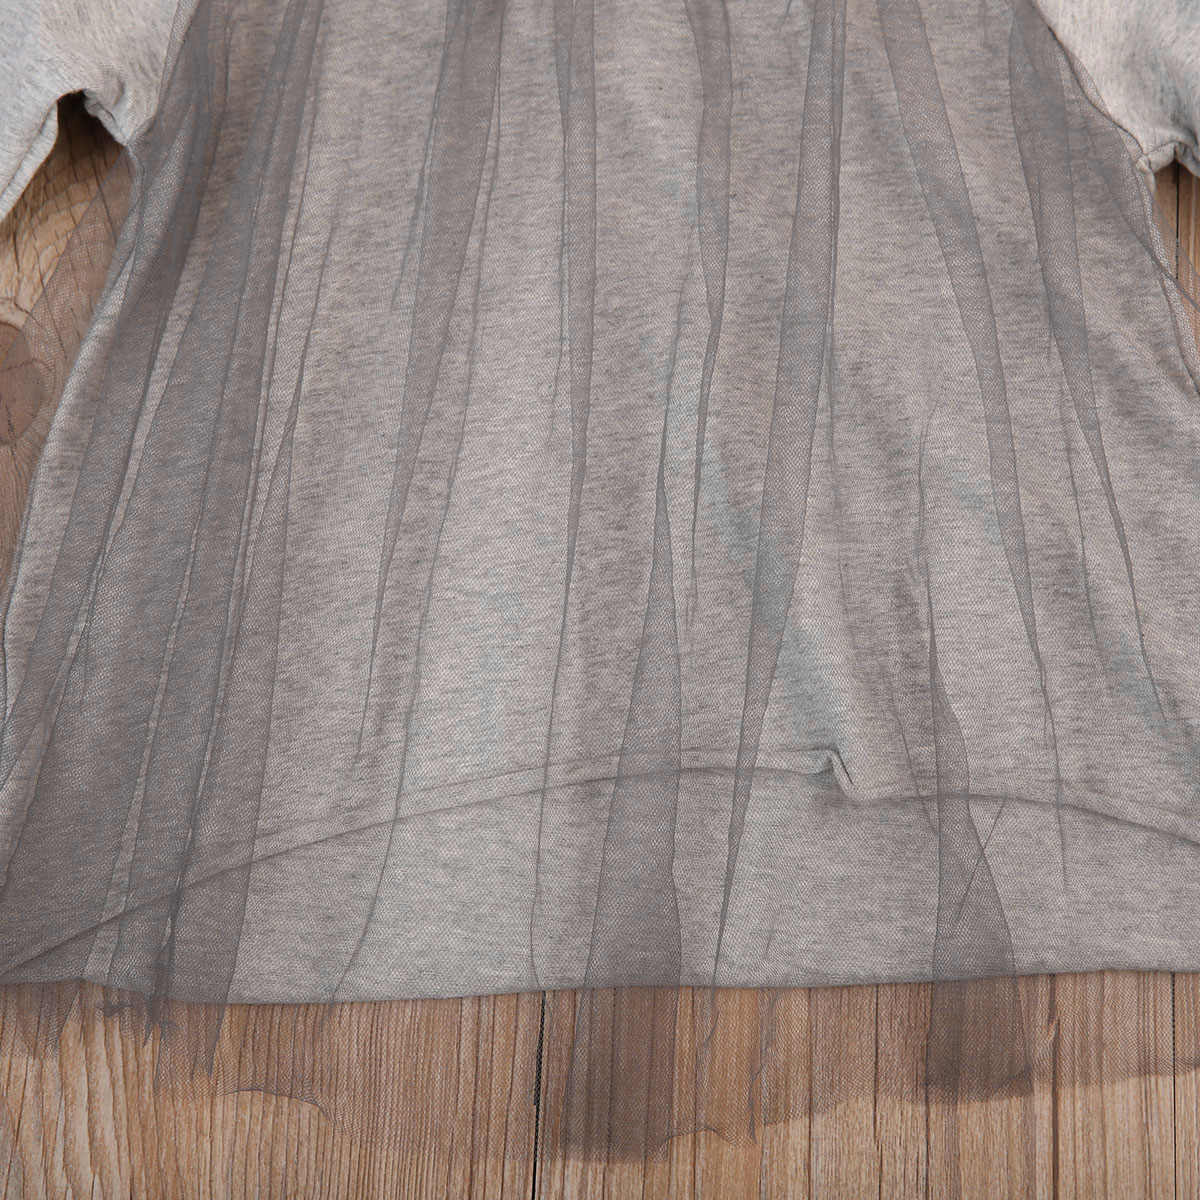 Baby Girls Dress Long Sleeve Loose Toddler Kids Princess Casual Party Birthday Tulle Dresses 0-4Y